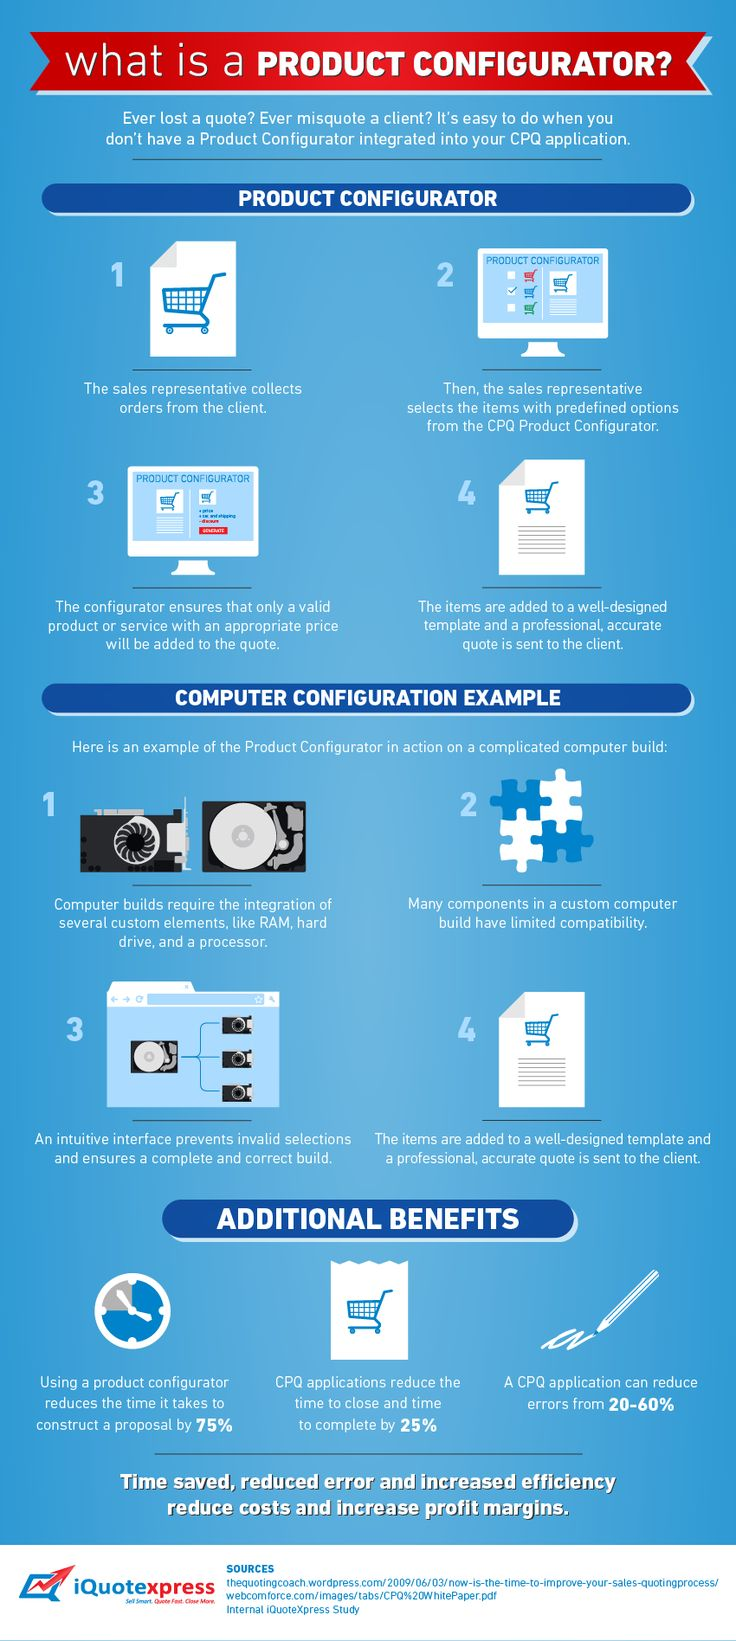 What Is A Product Configurator By Iquotexpress Cloud